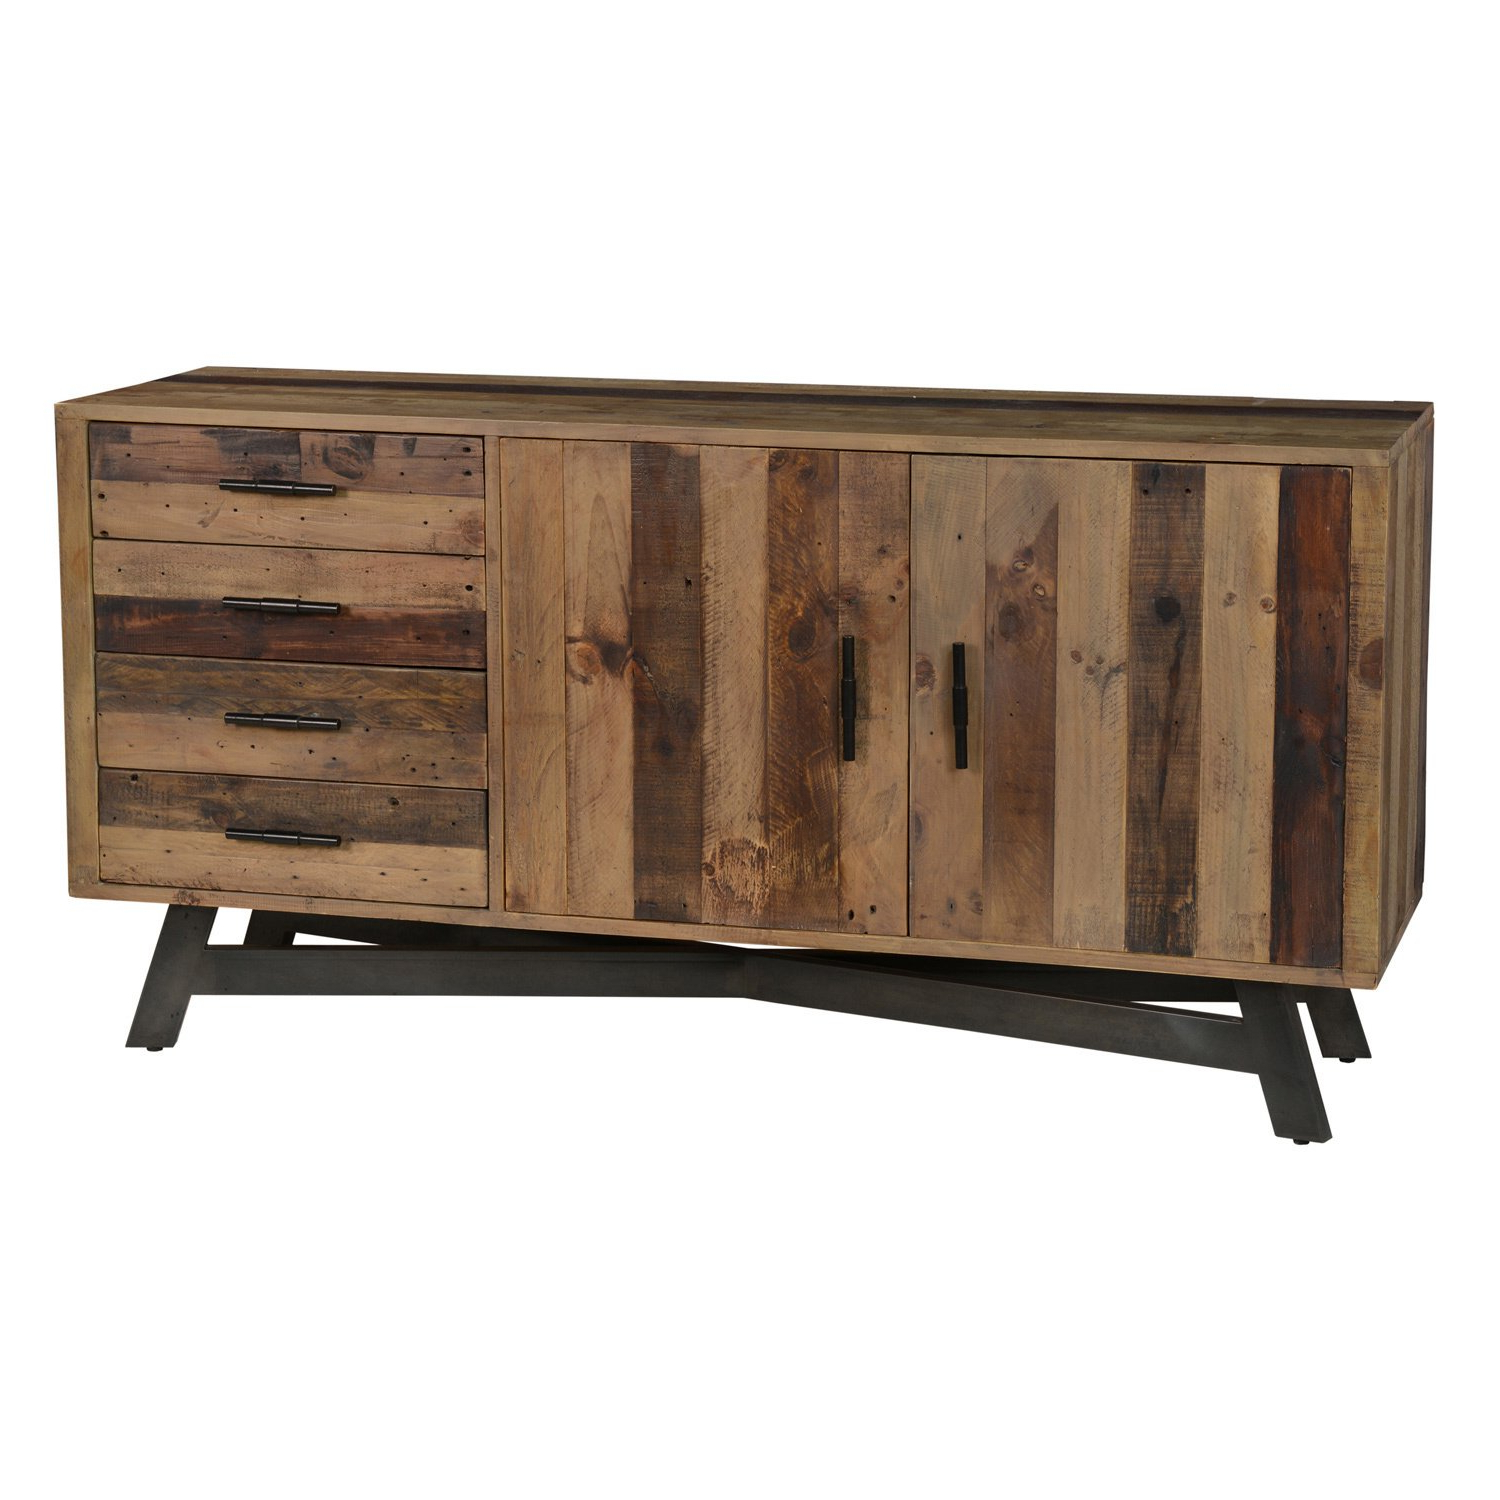 Most Recent Reclaimed Sideboards With Metal Panel Inside Shop Holden Reclaimed Wood 65 Inch Sideboardkosas Home – Free (View 5 of 20)